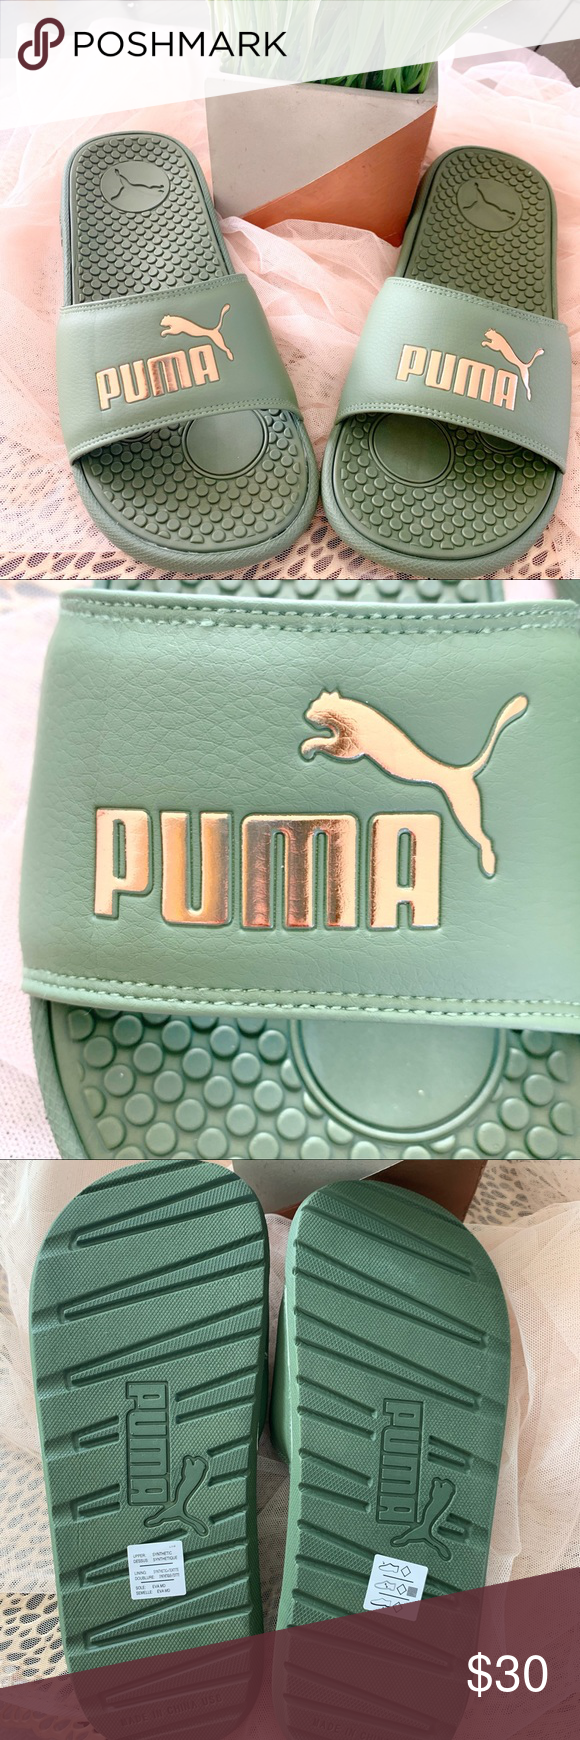 8de06adf0ca4 PUMA slides olive green rose gold faux leather Brand new never worn Faux  leather